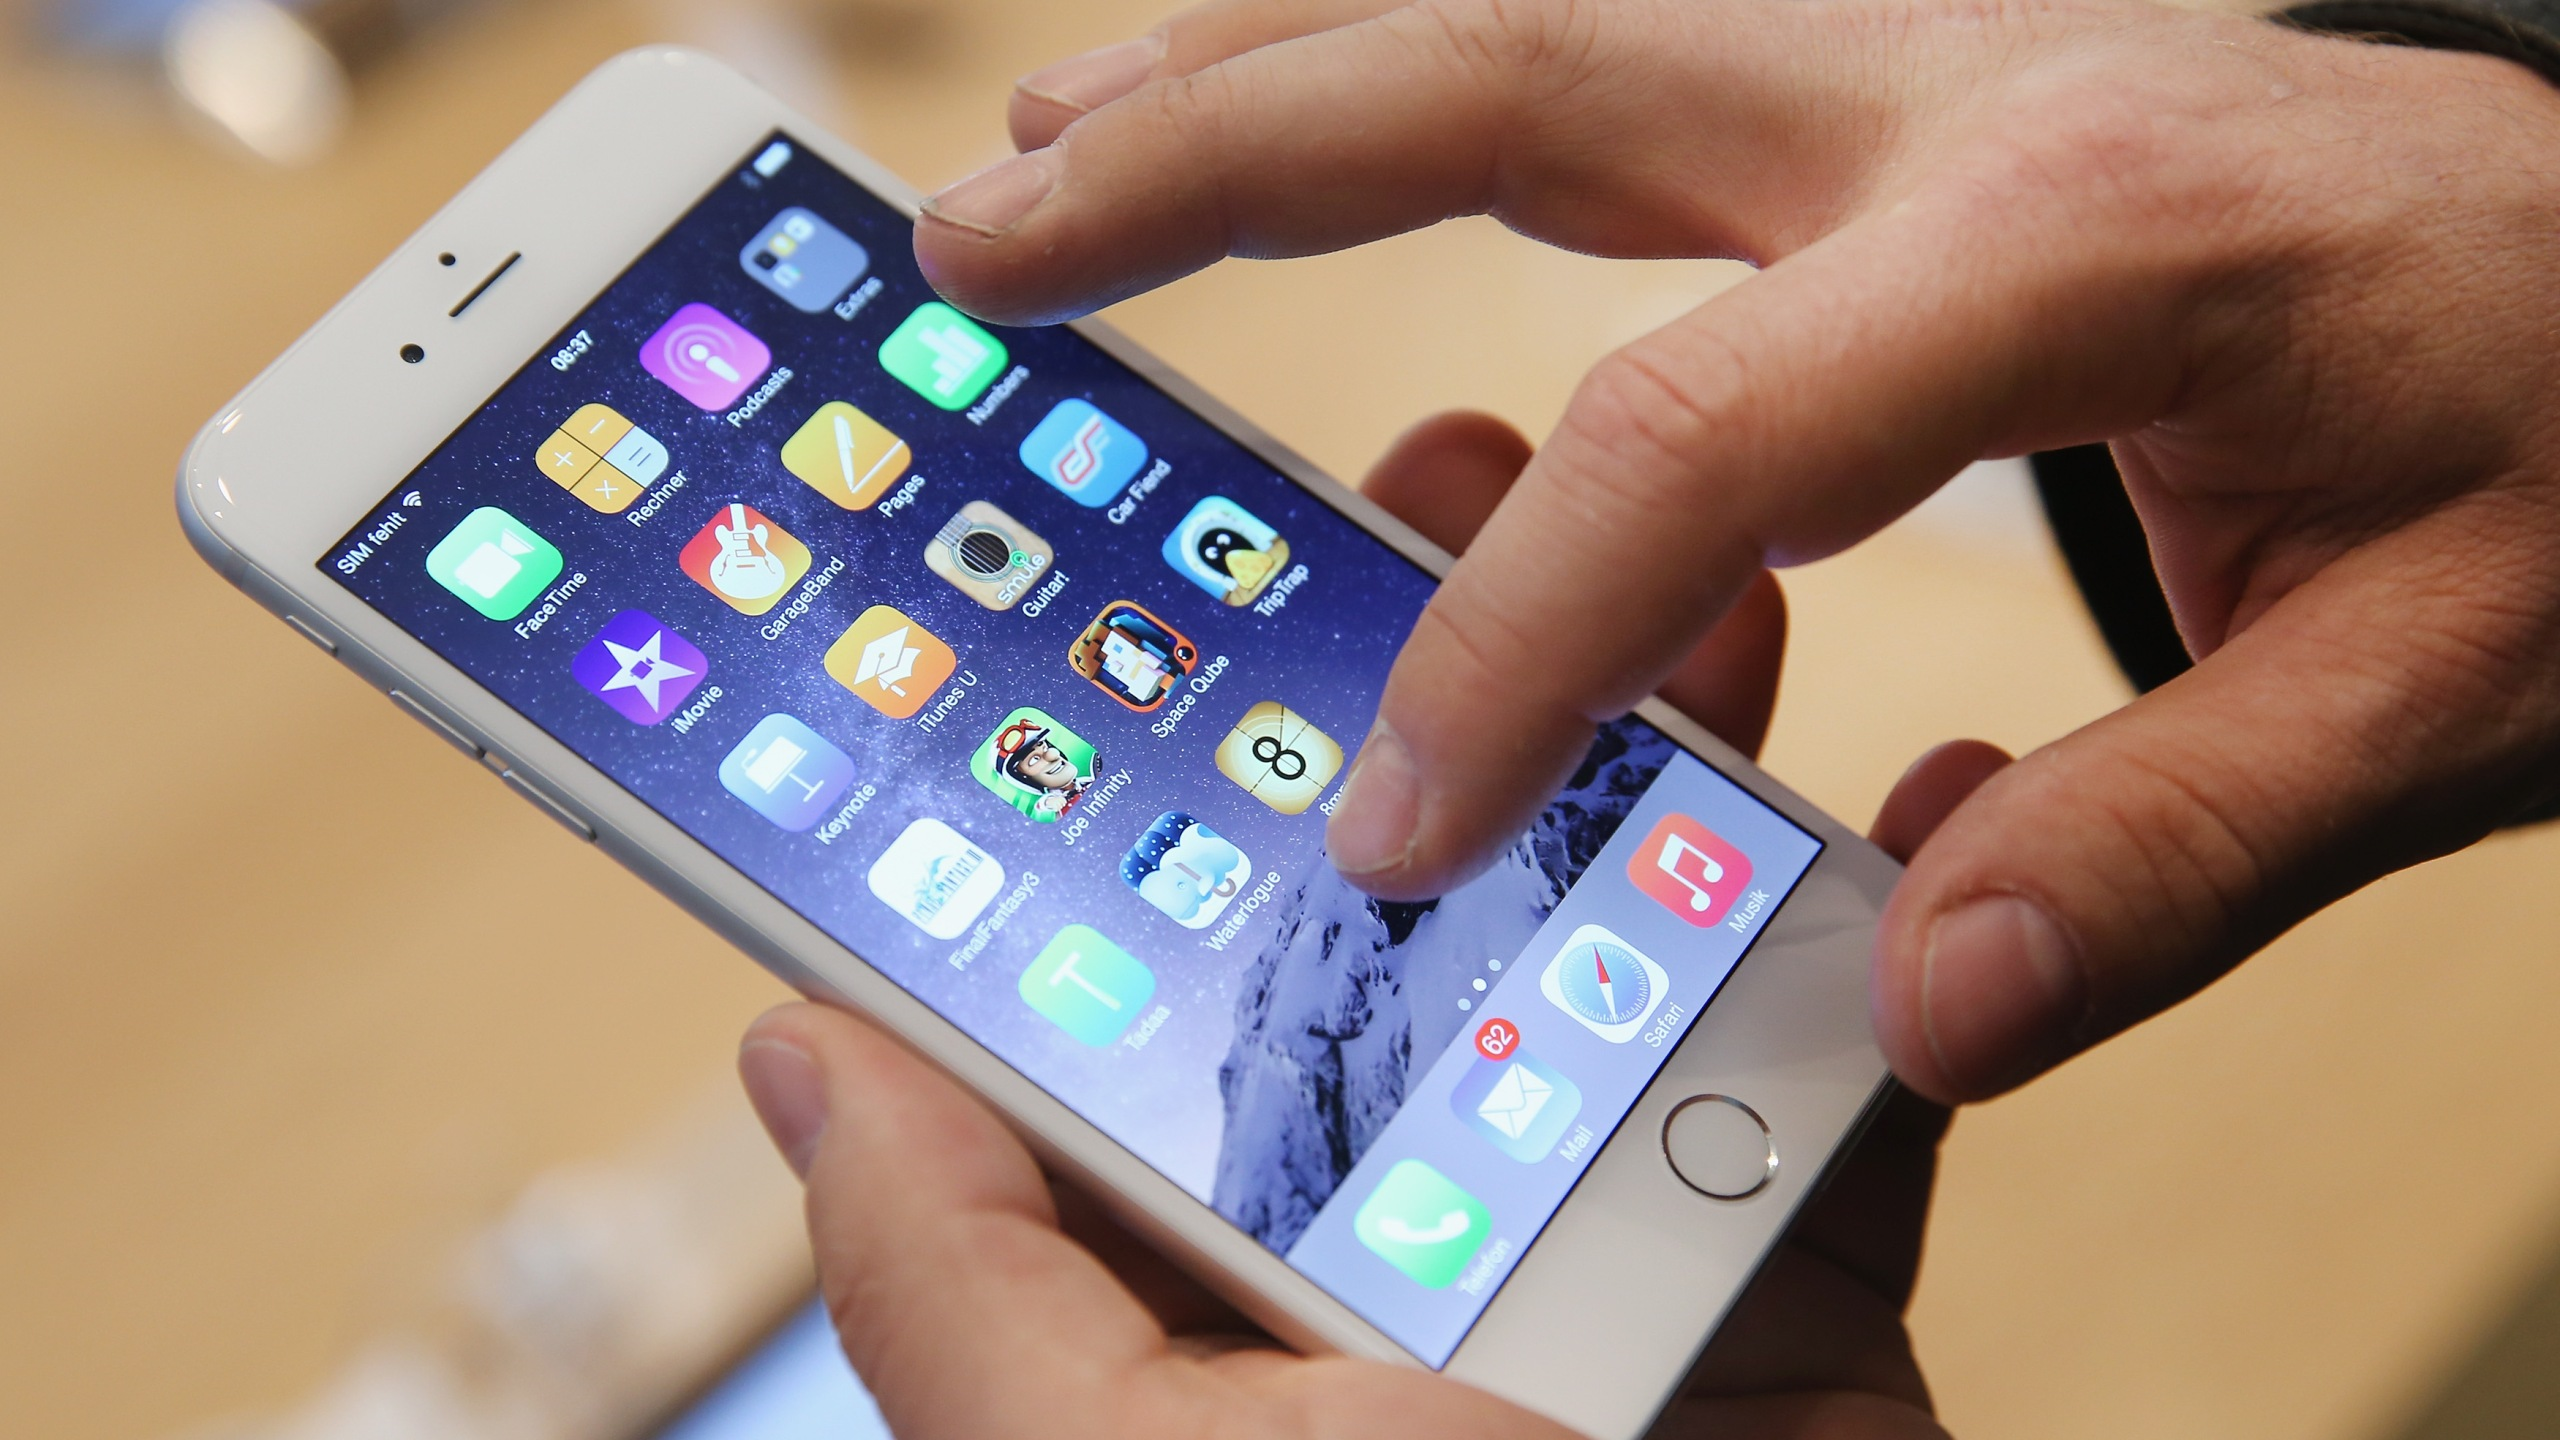 An iPhone 6 is seen in a file photo. (Credit: Sean Gallup/Getty Images)